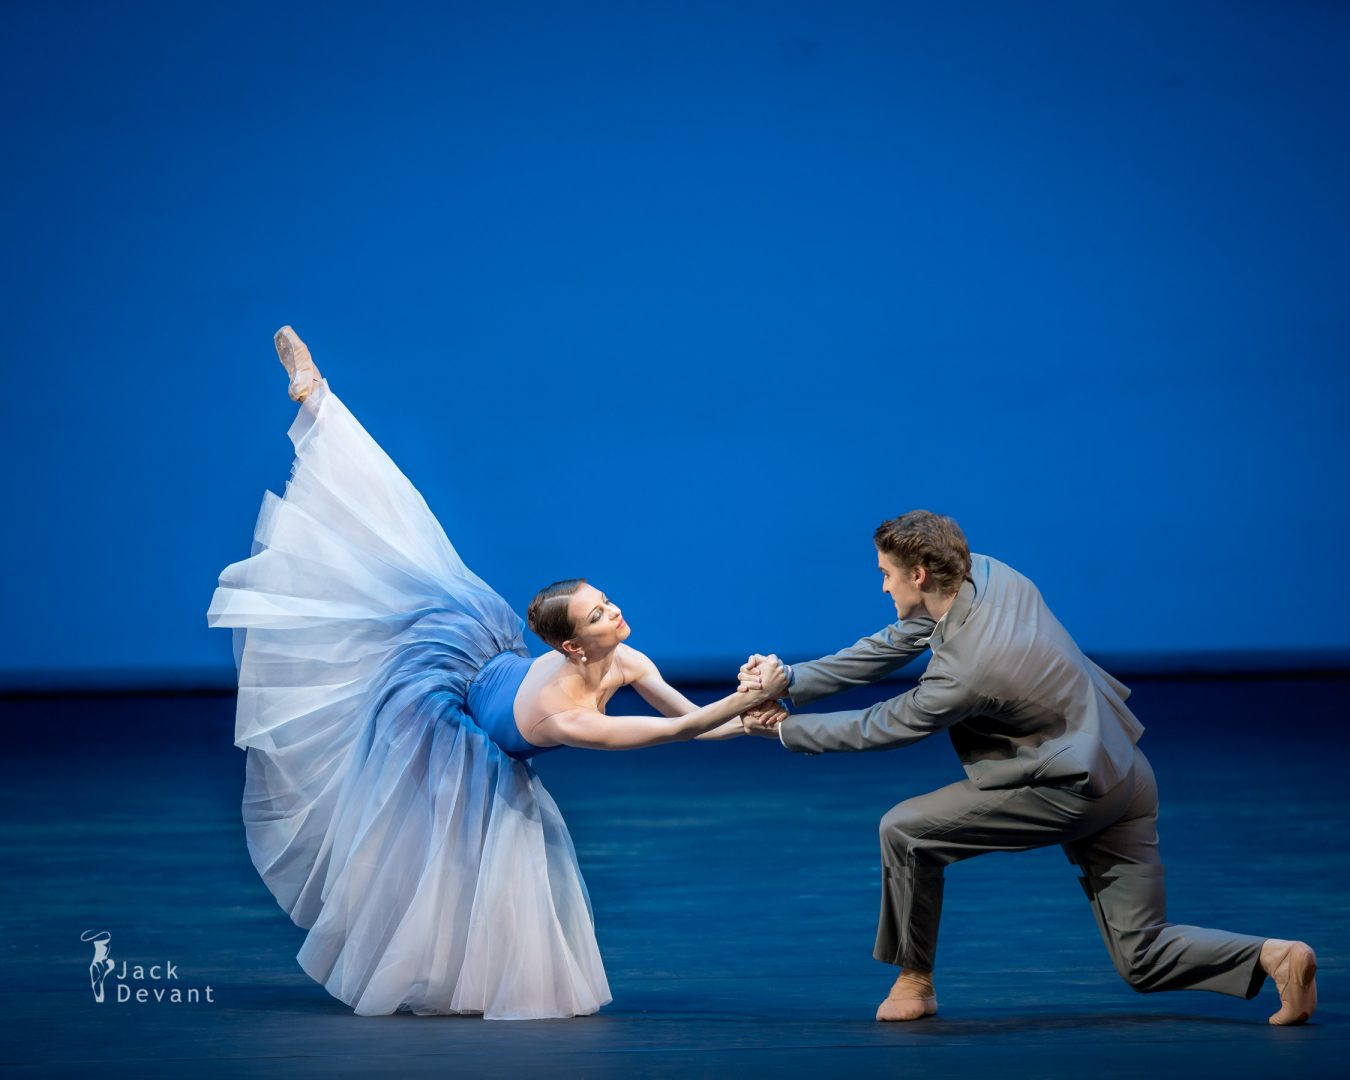 Benois de la Danse 2017, Nina Kaptsova and Alexander Volchkov (The Bolshoi Theatre) in the duet of Bianca and Lucentio from Taming of the Shrew. Music by Dmitri Shostakovich, choreography by Jean-Christophe Maillot